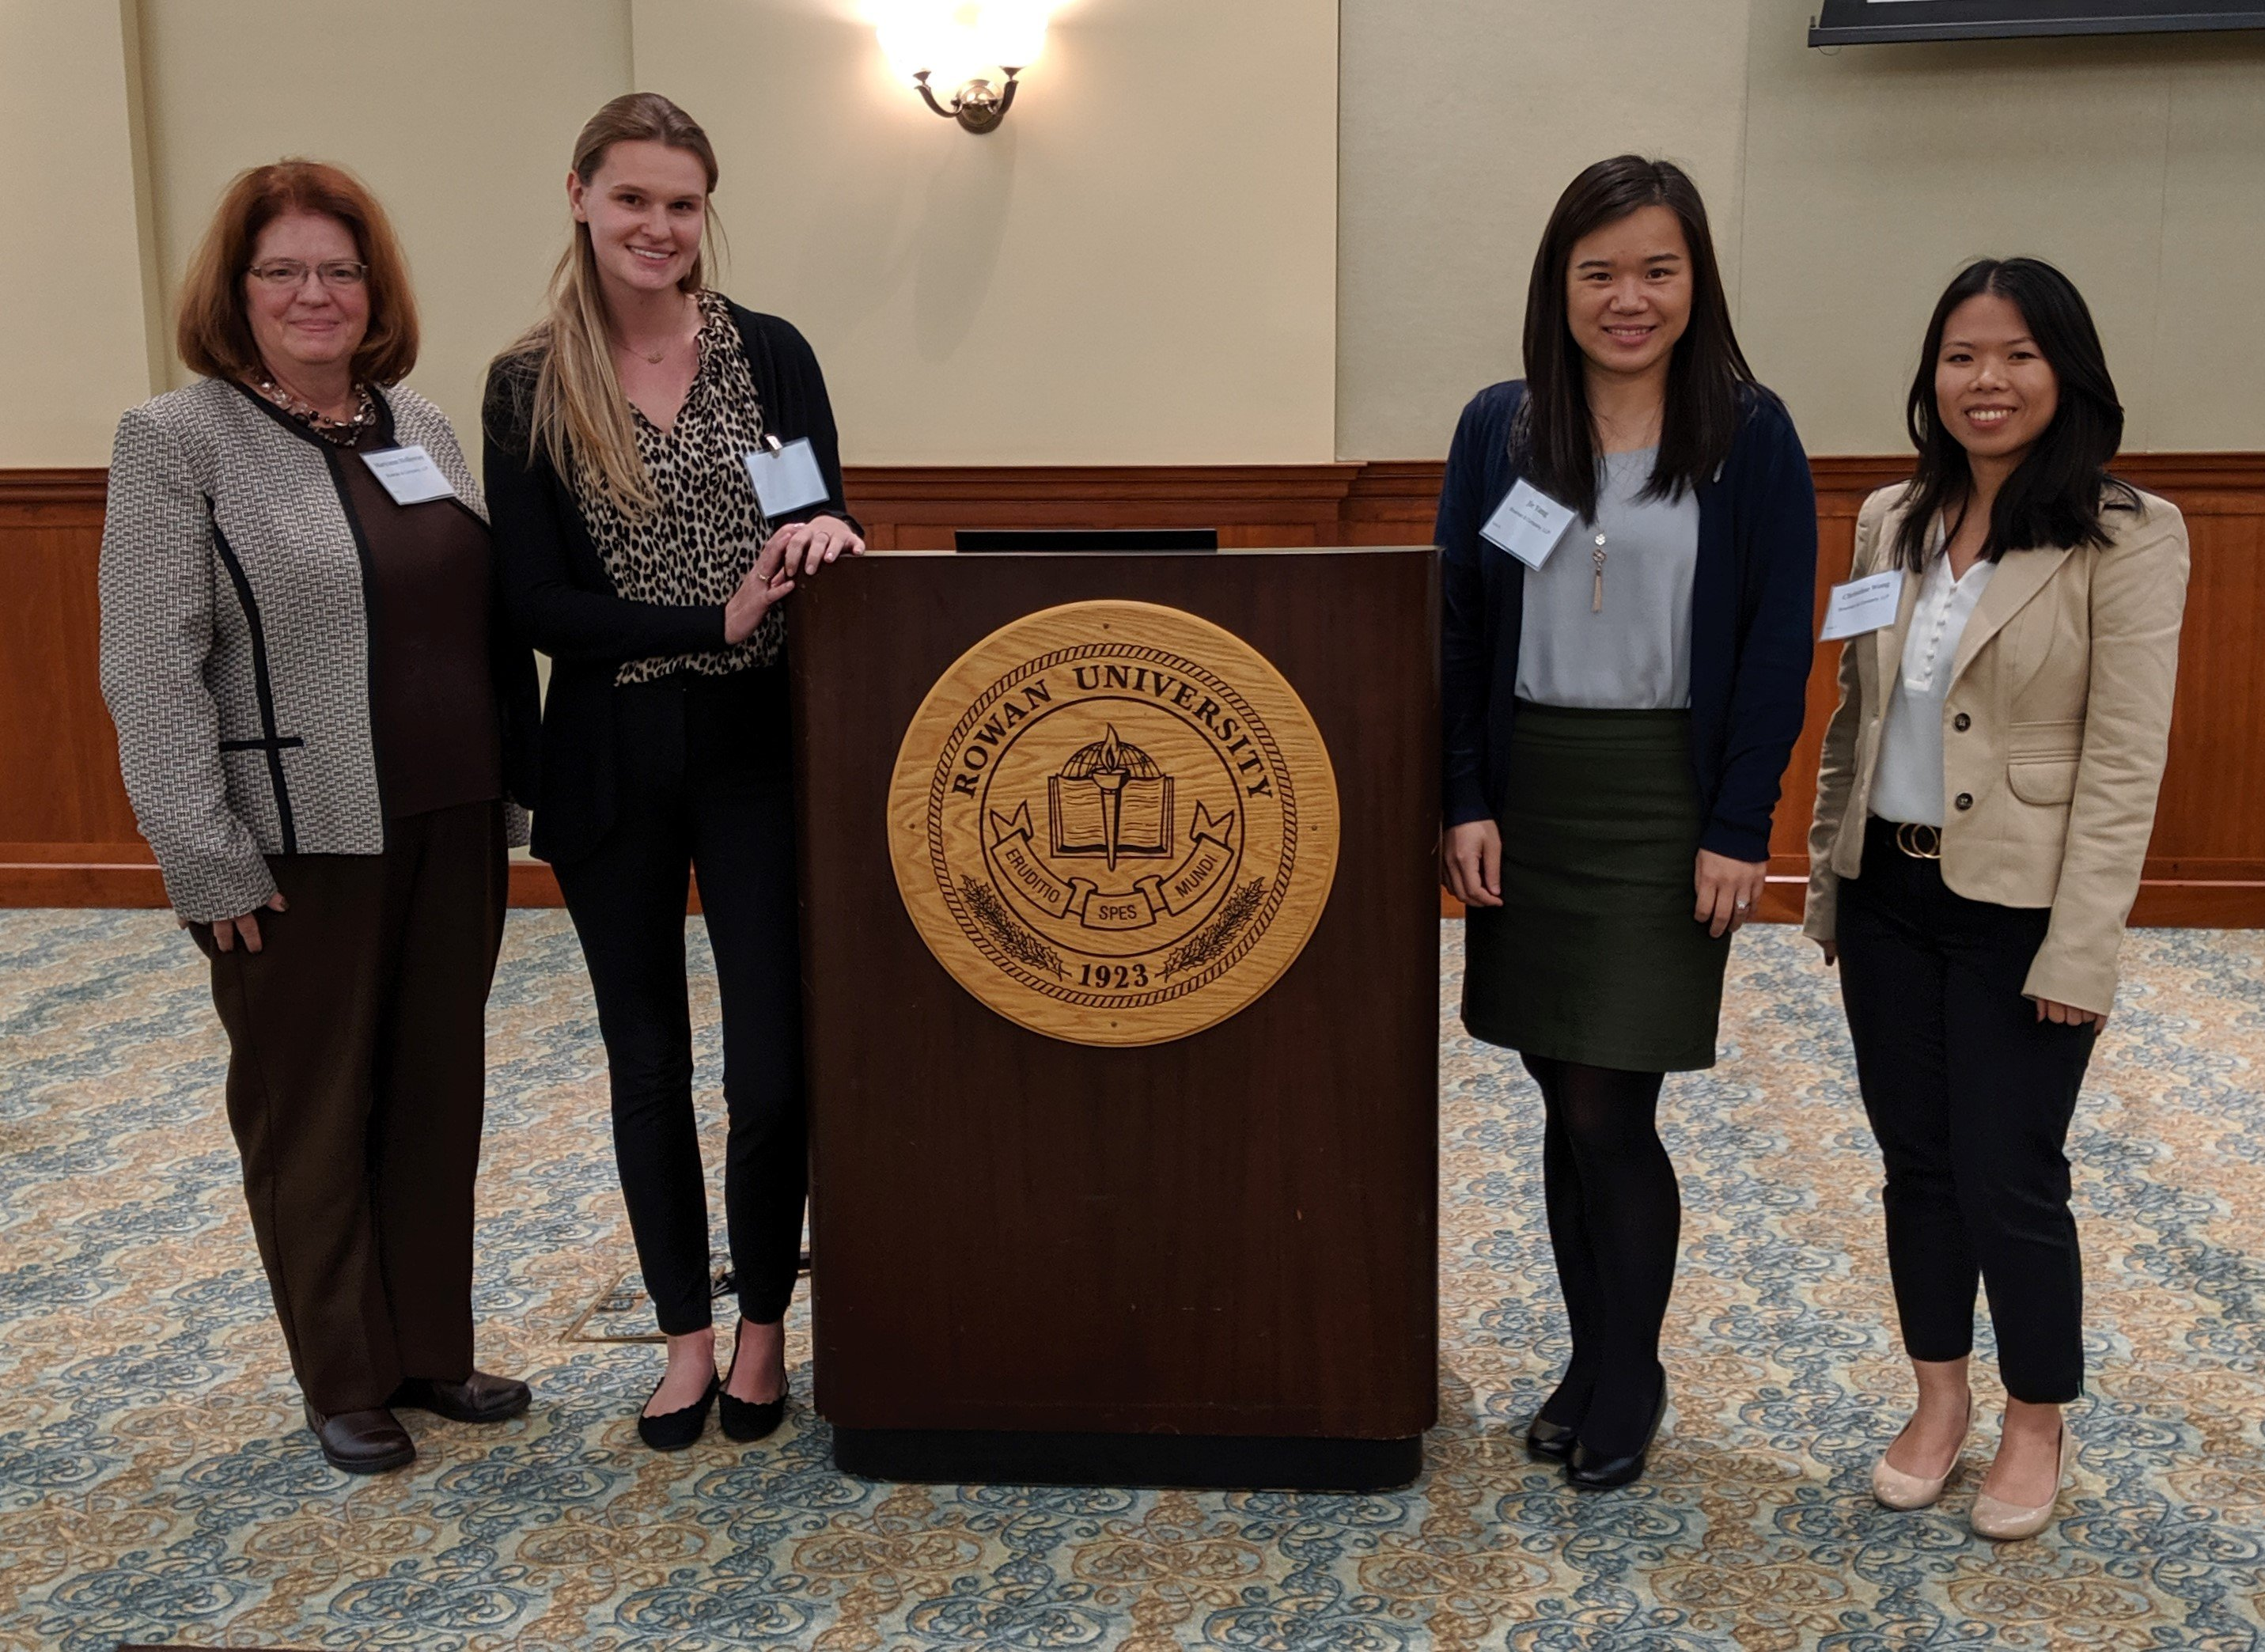 Bowman Celebrates Rowan University's Accounting Mentorship Program